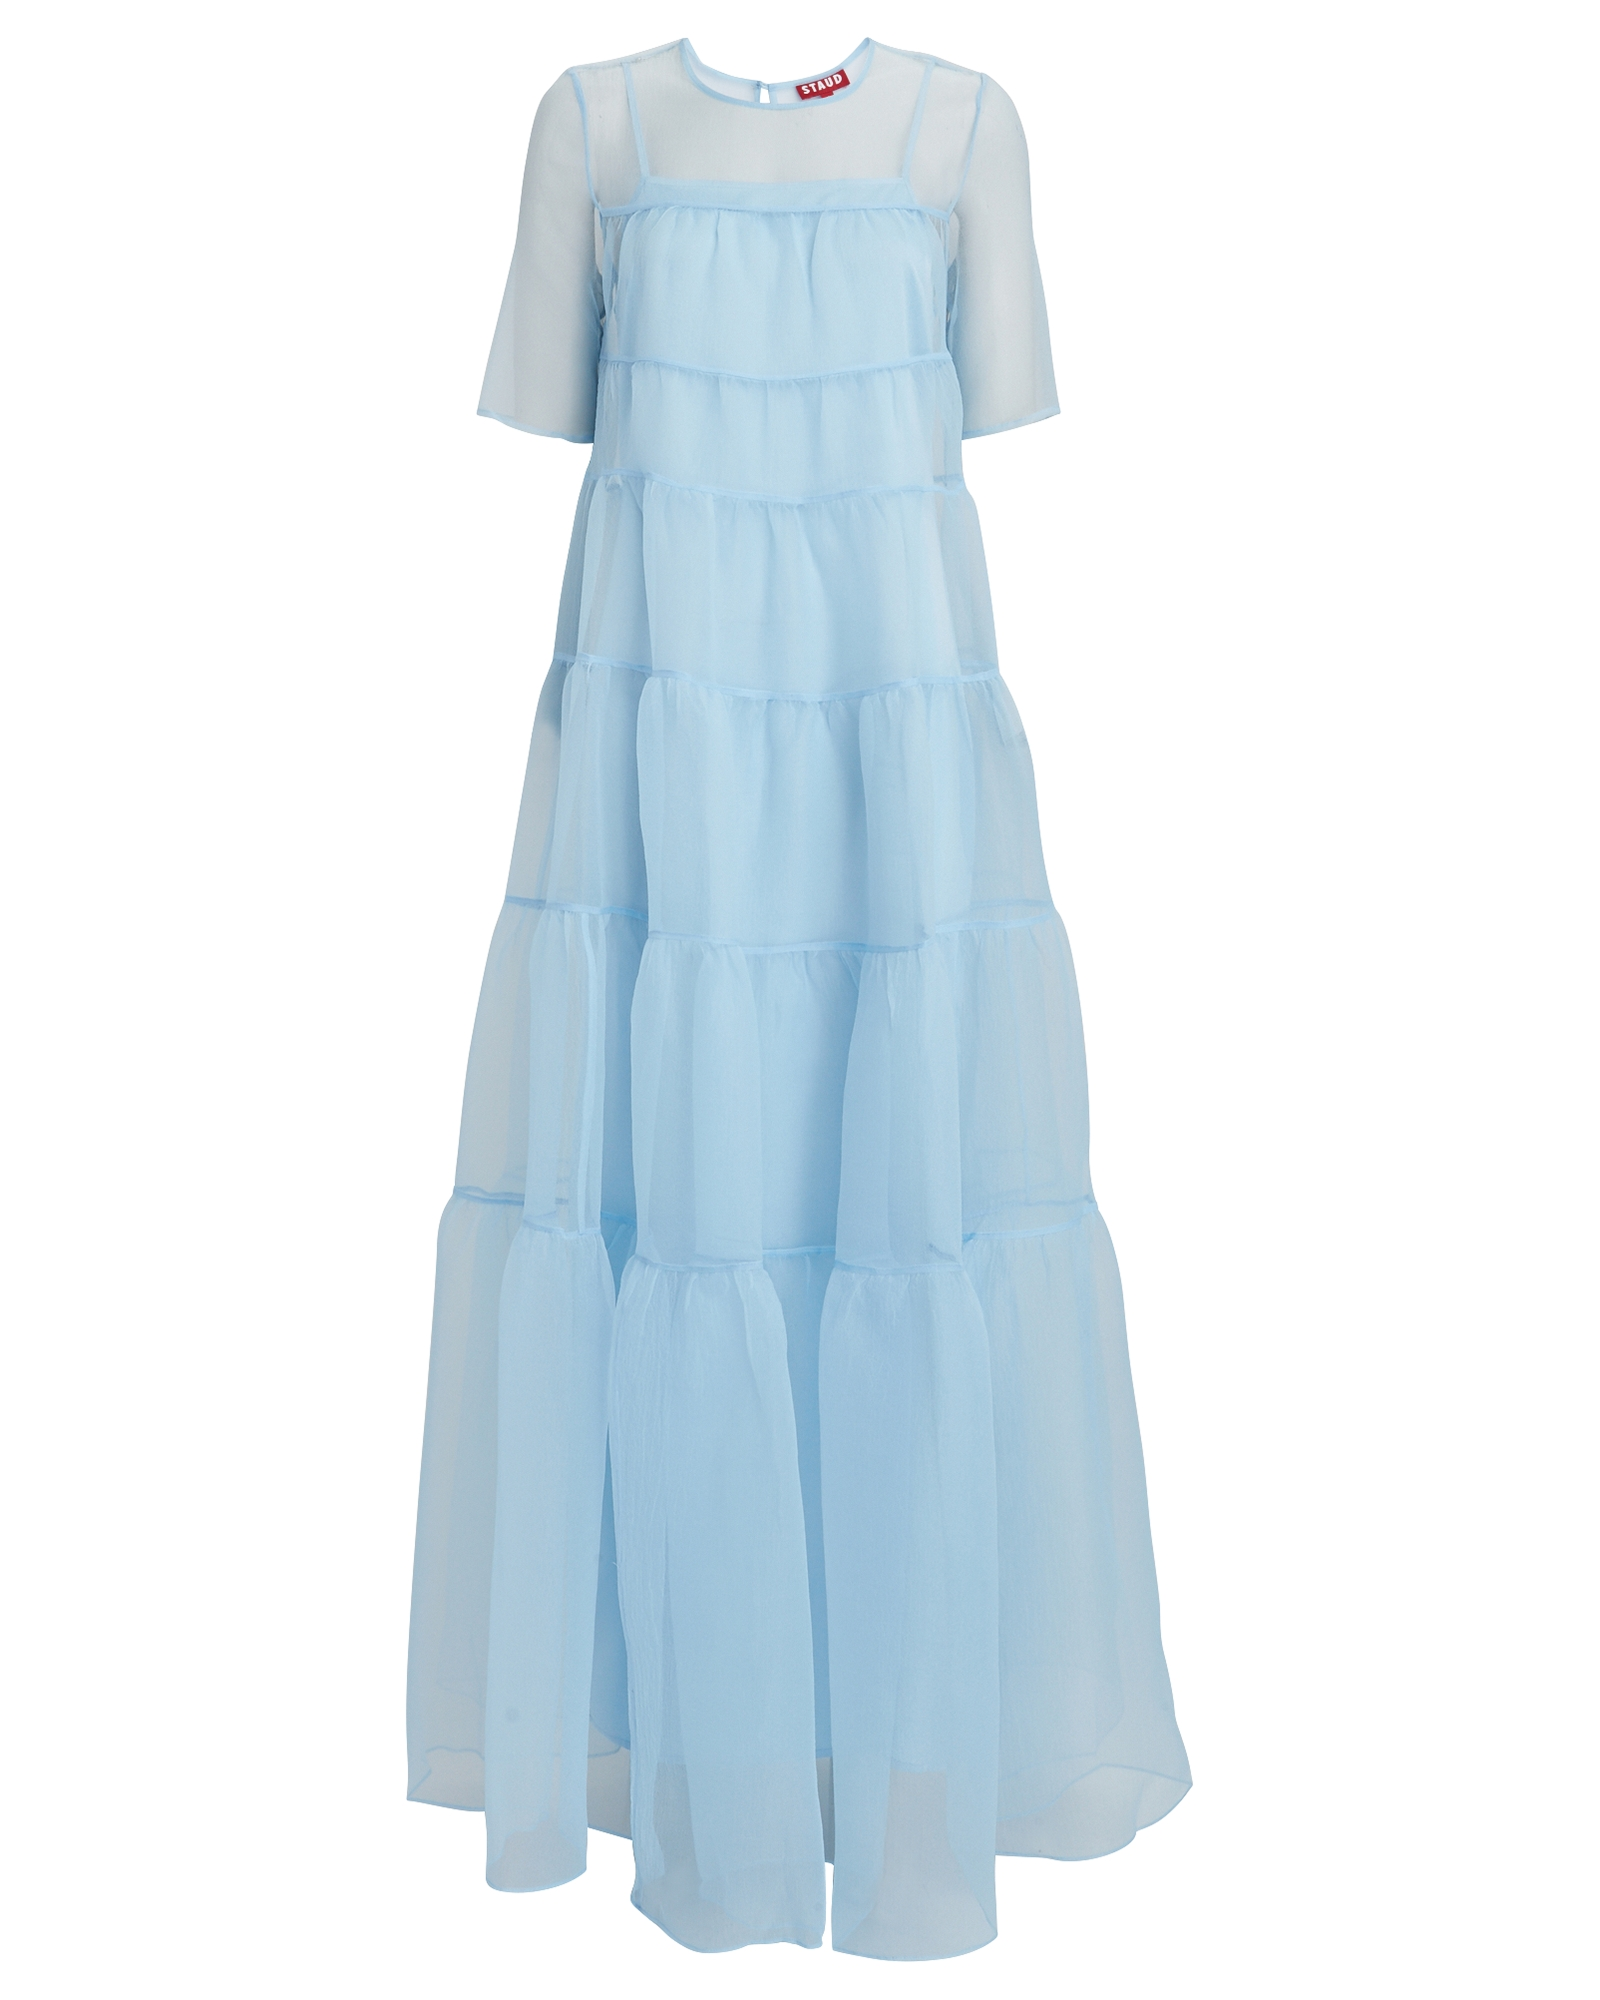 Staud STAUD HYACINTH TIERED ORGANZA DRESS